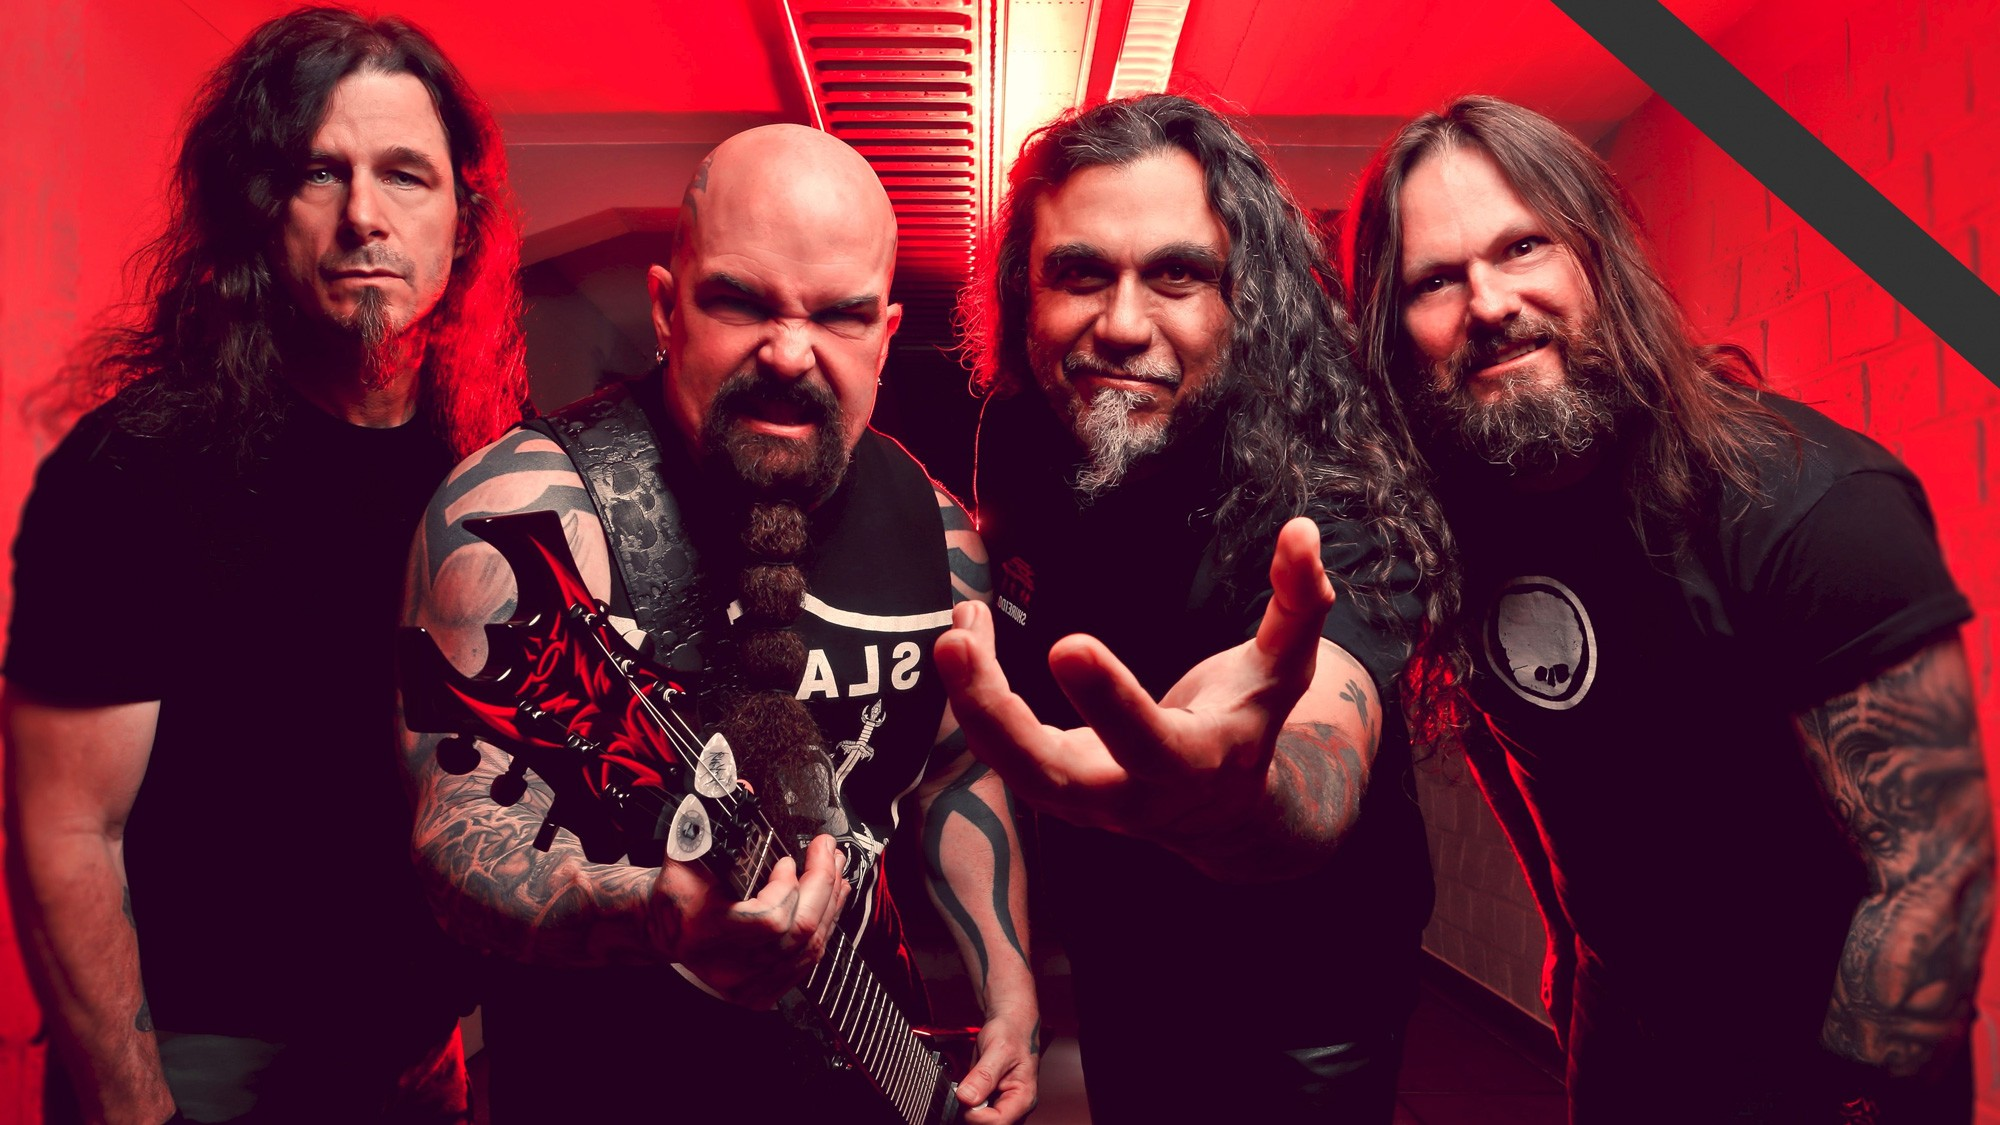 Slayer's final tour to include Lamb of God, Anthrax, Behemoth and Testament